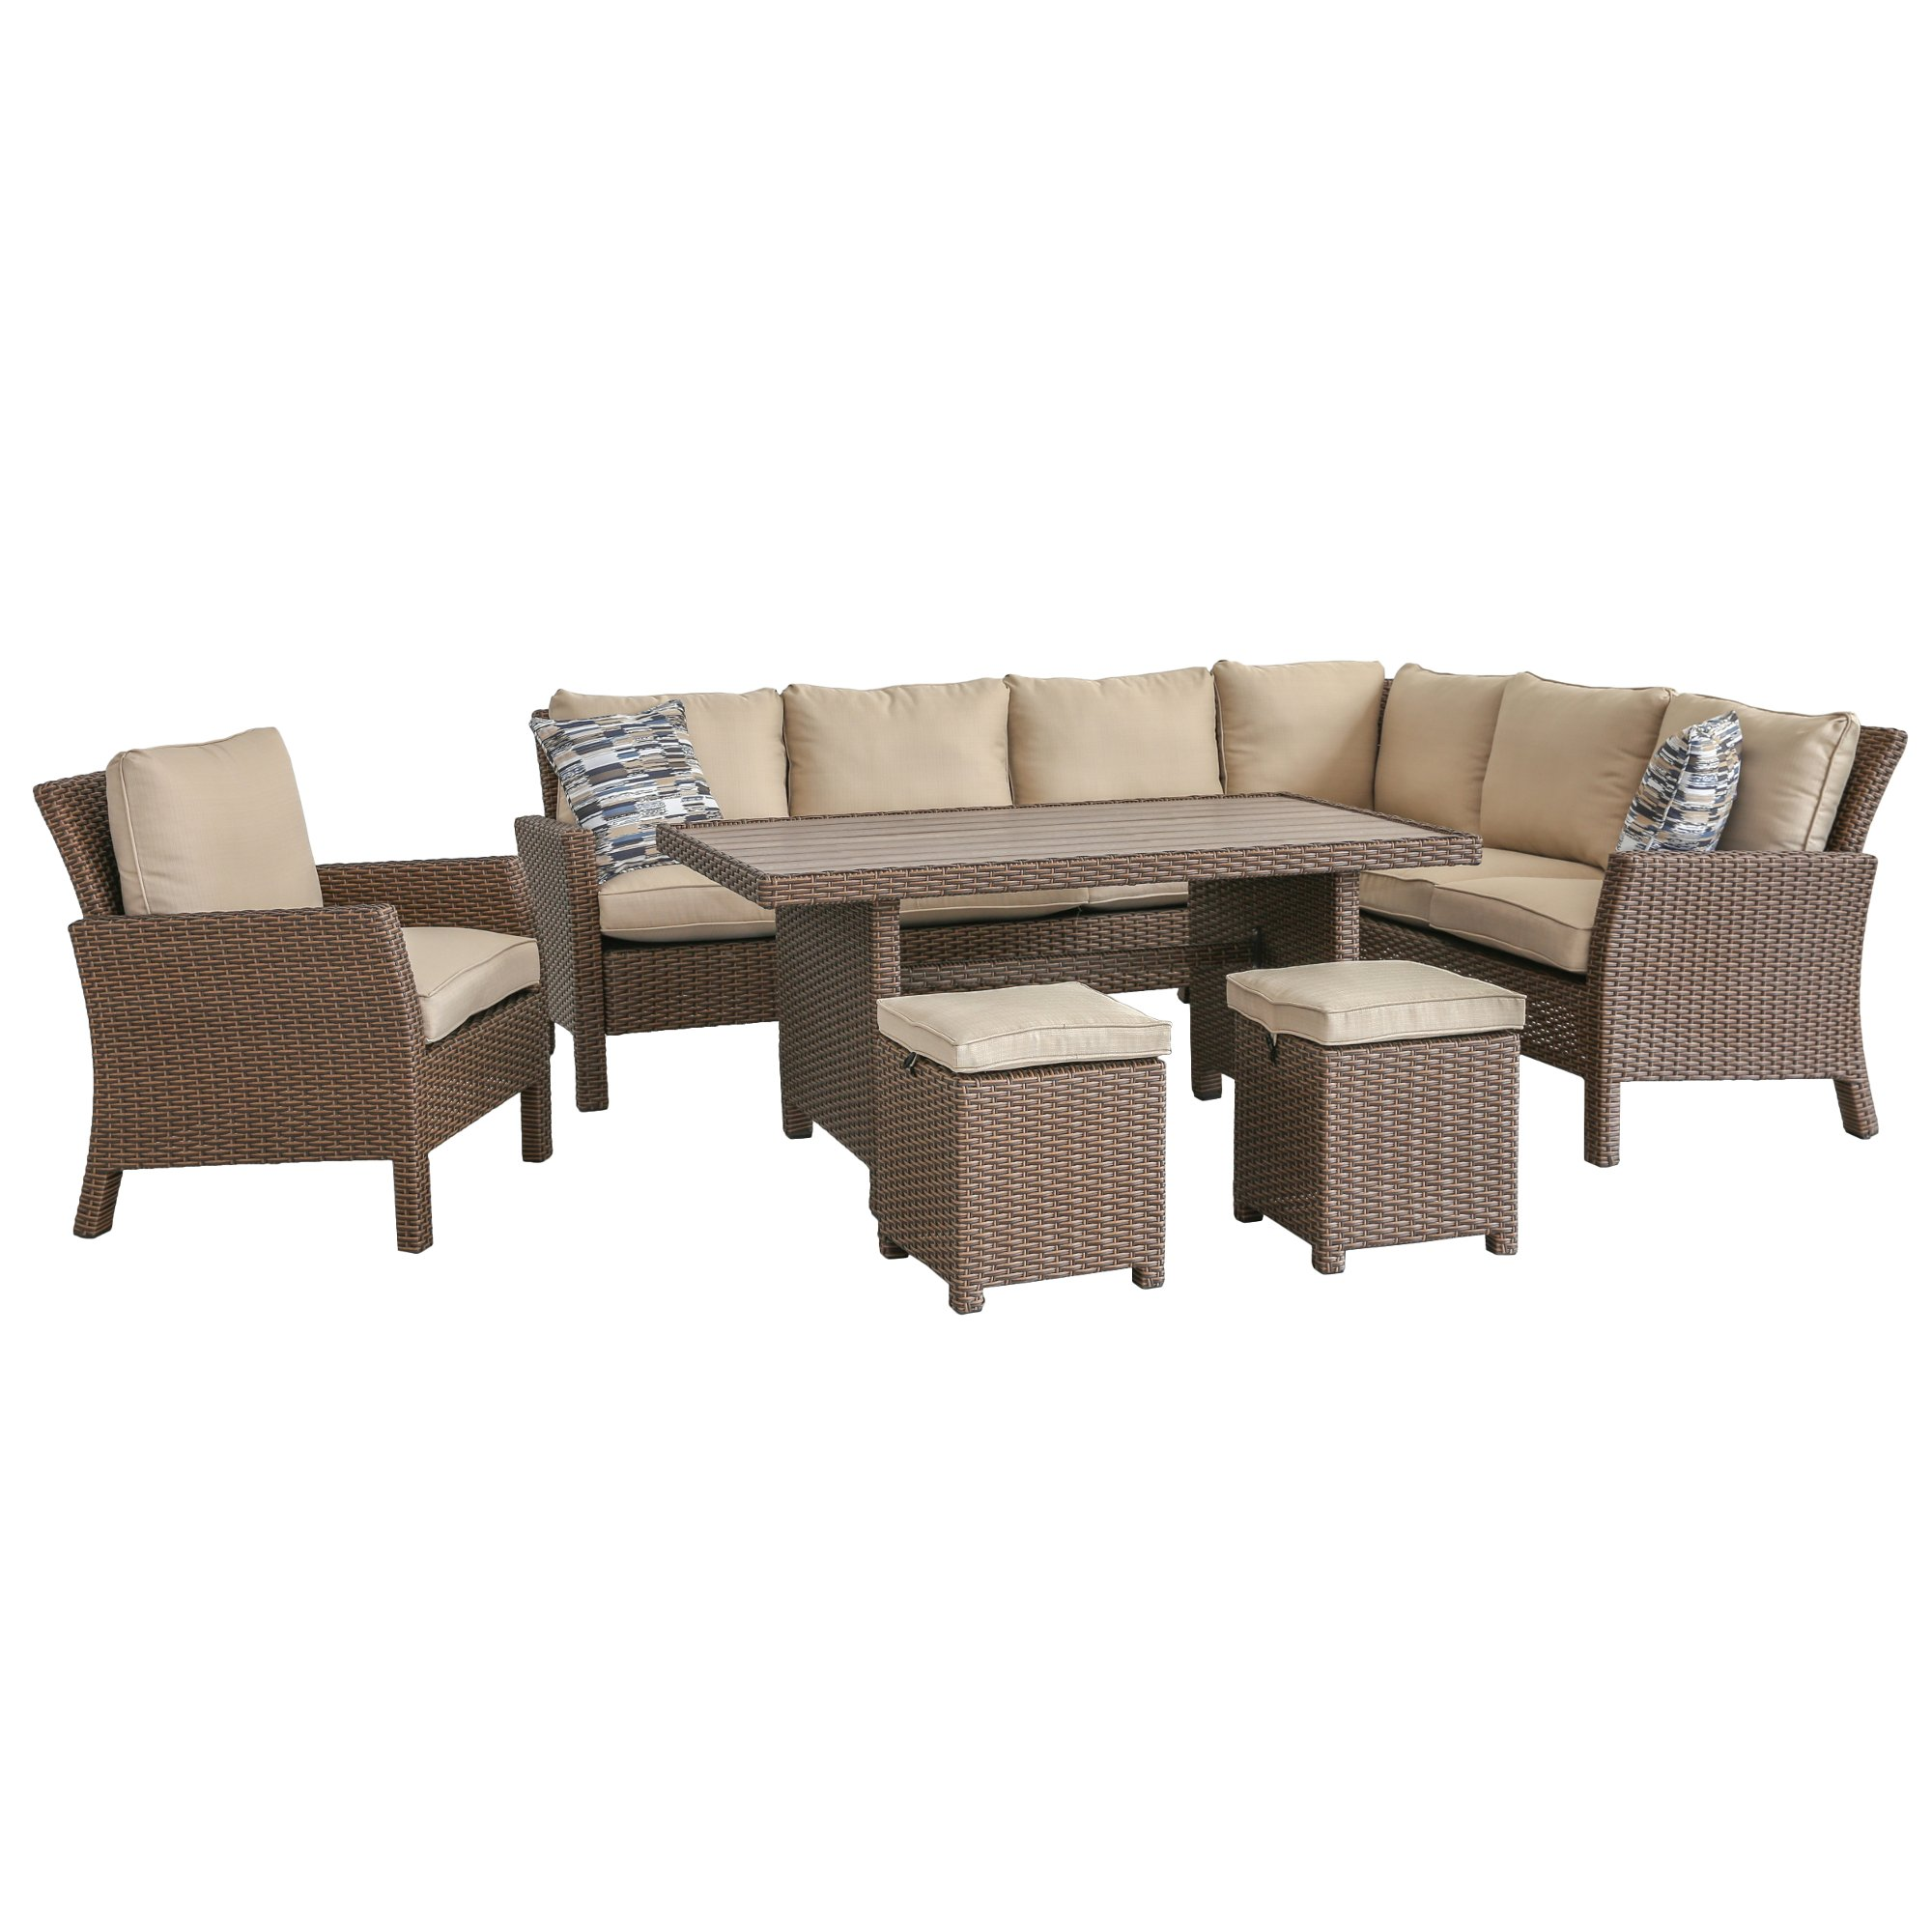 6 piece outdoor patio furniture set arcadia rc willey furniture store